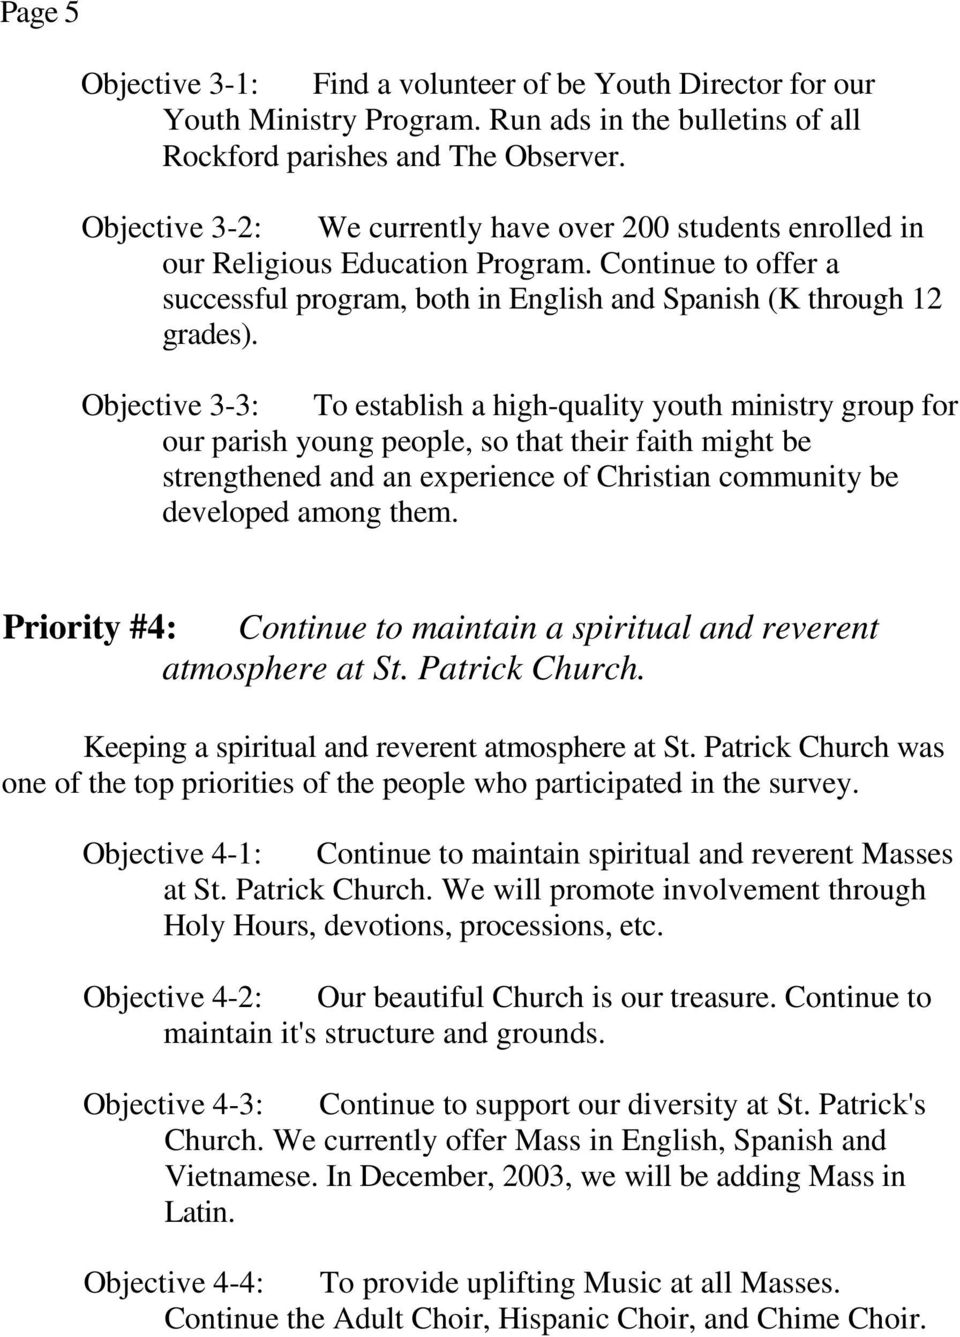 Objective 3-3: To establish a high-quality youth ministry group for our parish young people, so that their faith might be strengthened and an experience of Christian community be developed among them.